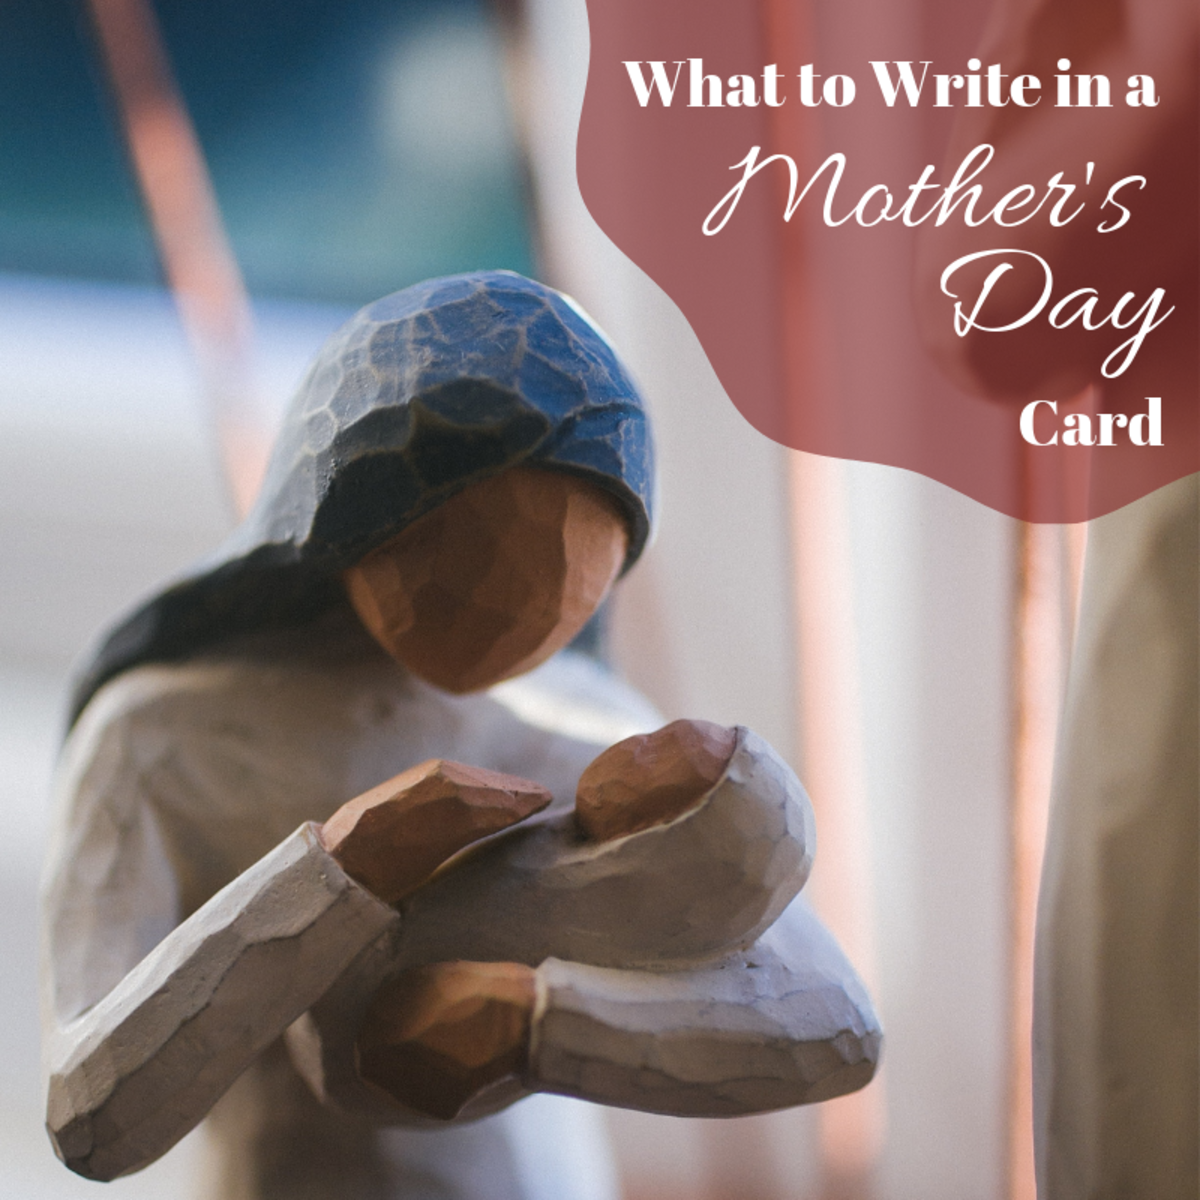 Our mothers deserve our undying appreciation, but finding the words to express it can be difficult.